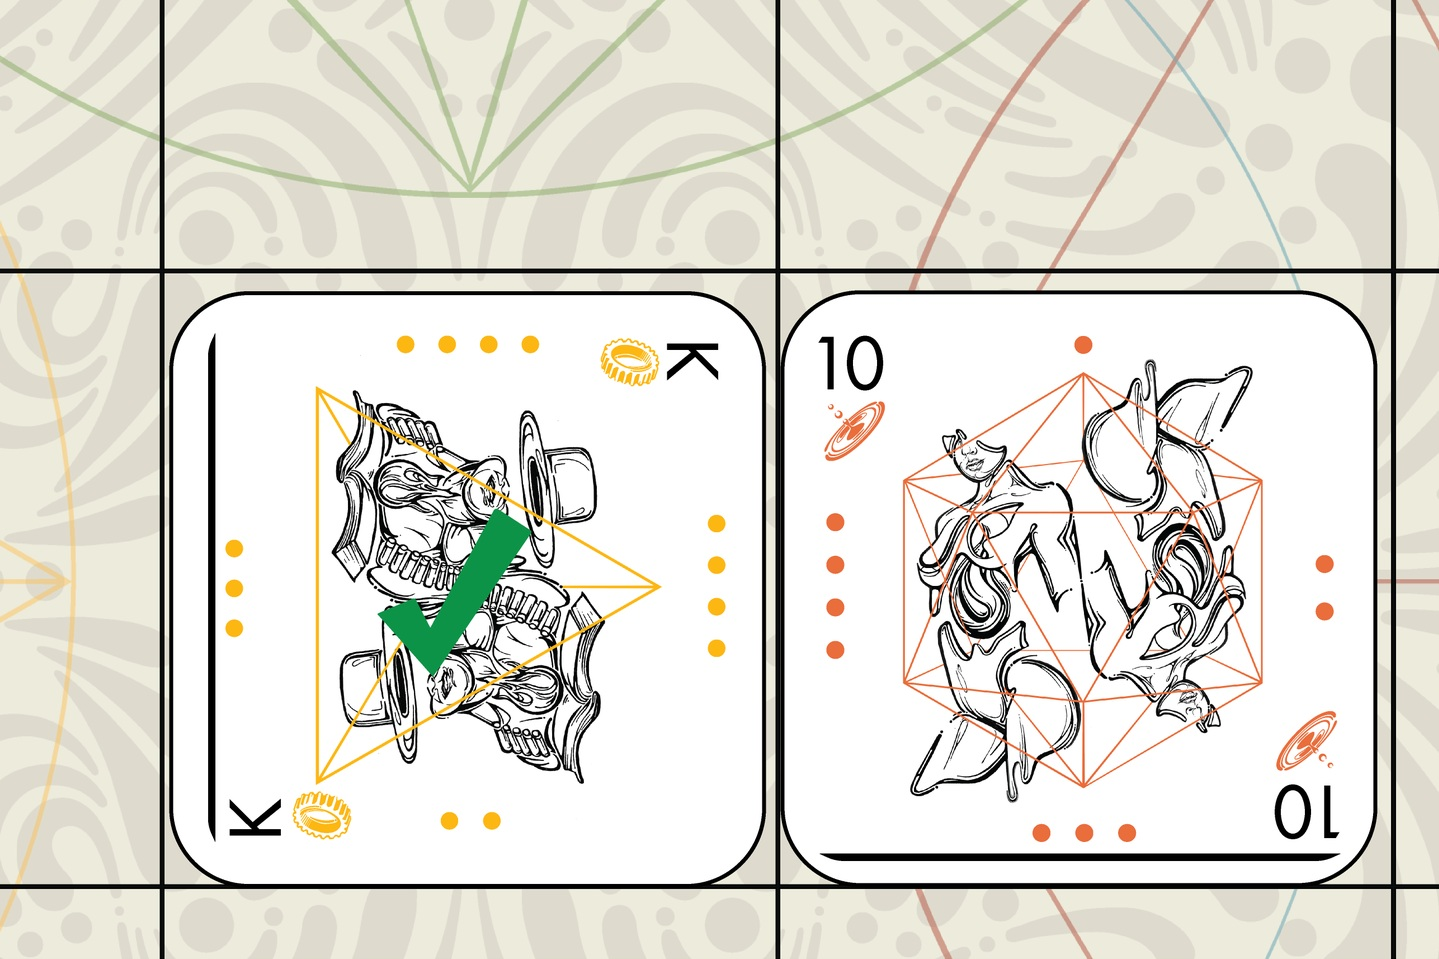 South then moves West's King into a threatened position (Souls consumes Gears).